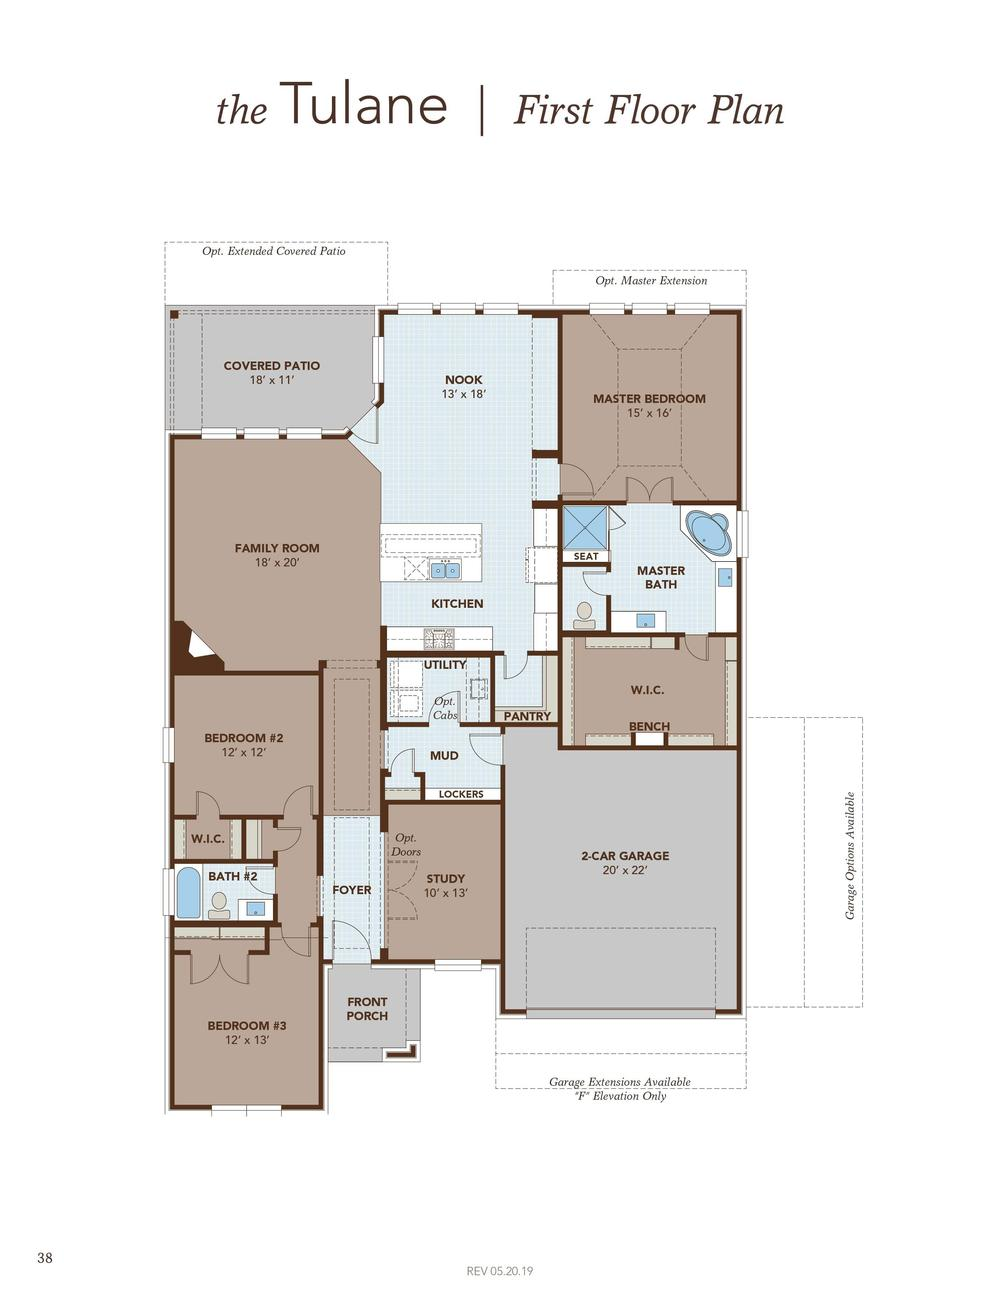 Tulane First Floor Plan